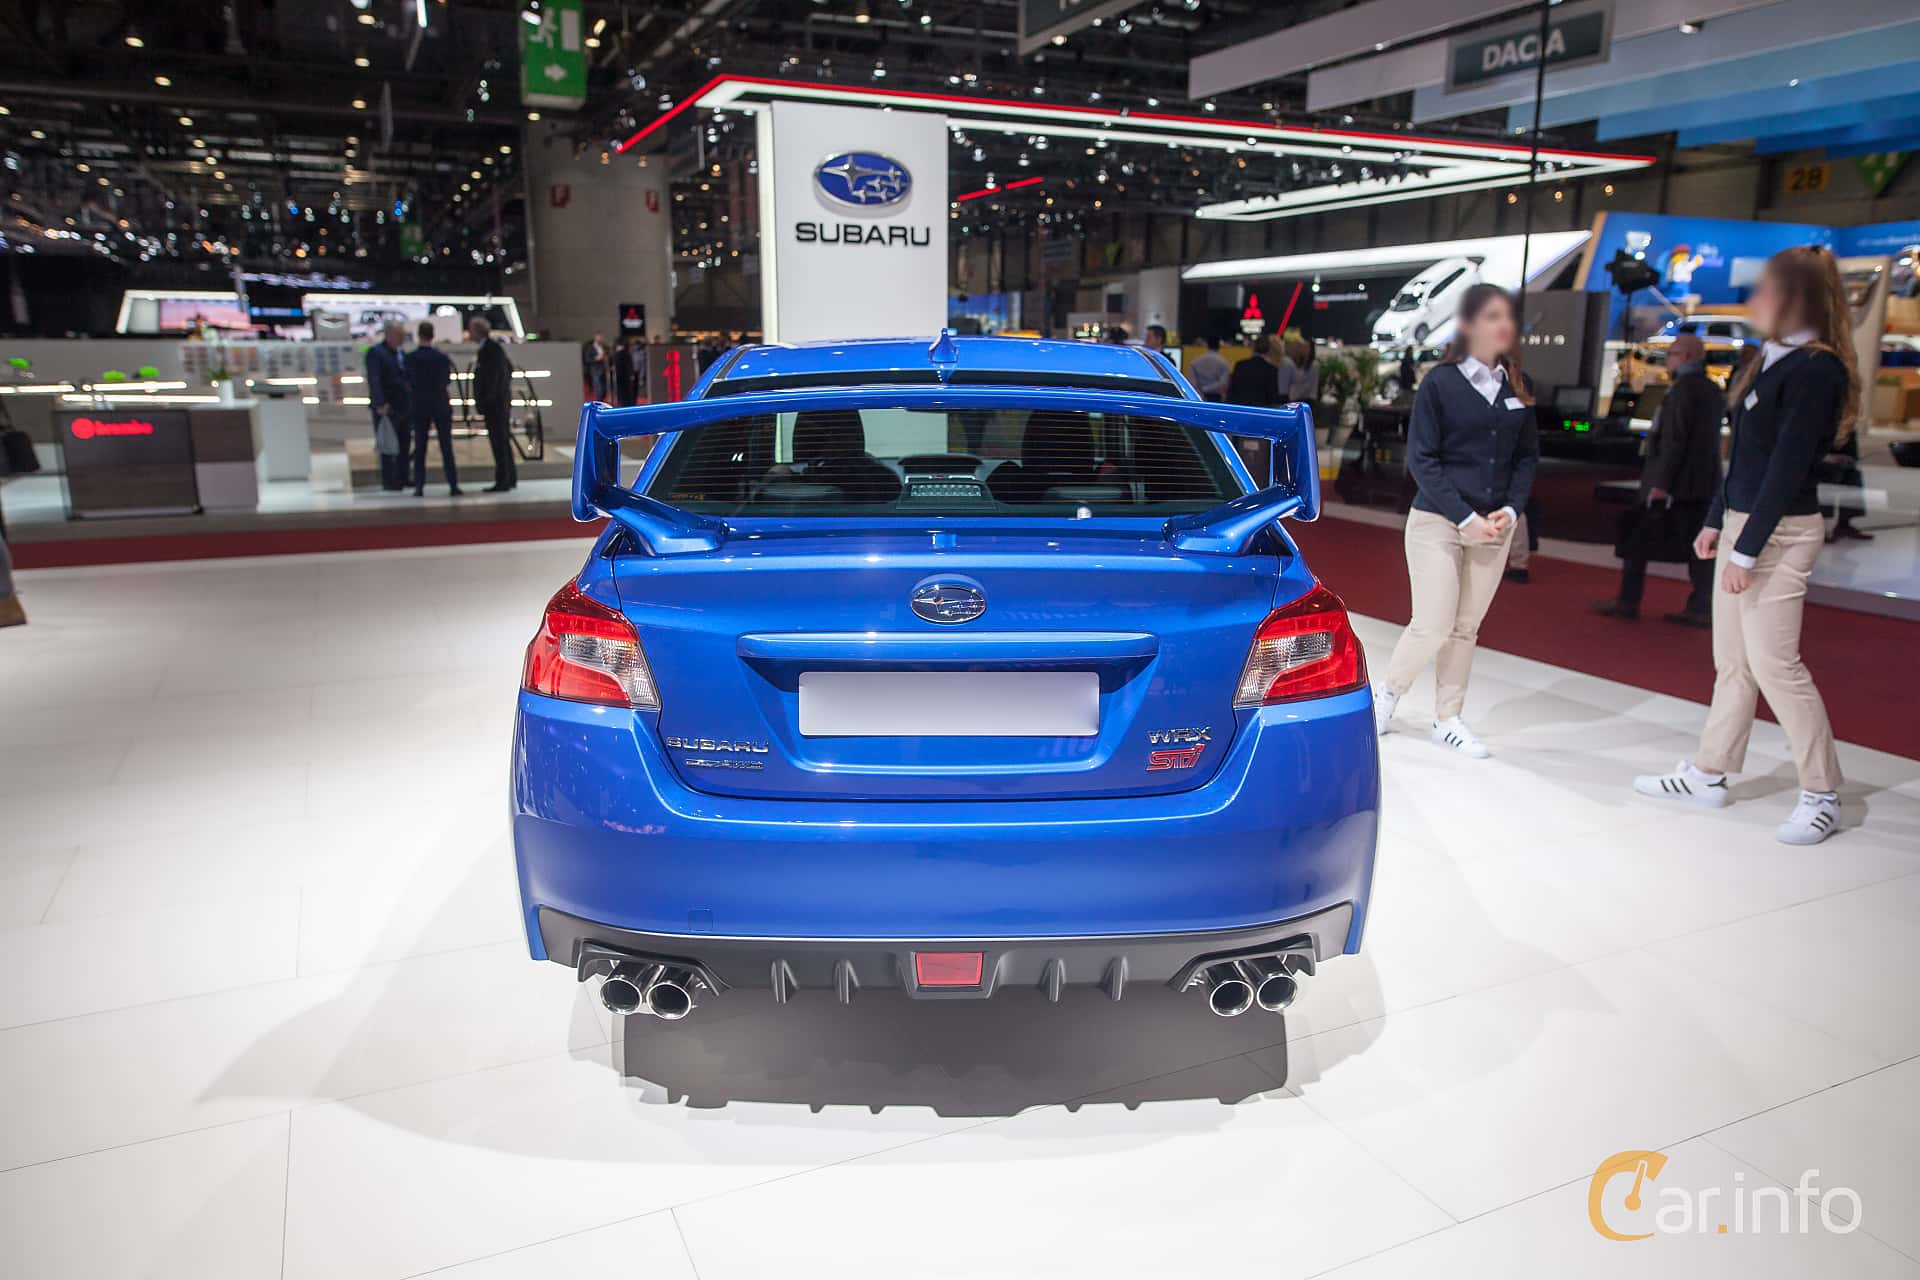 Subaru WRX STi 2.5 4WD Manual, 300hp, 2018 at Geneva Motor Show 2018